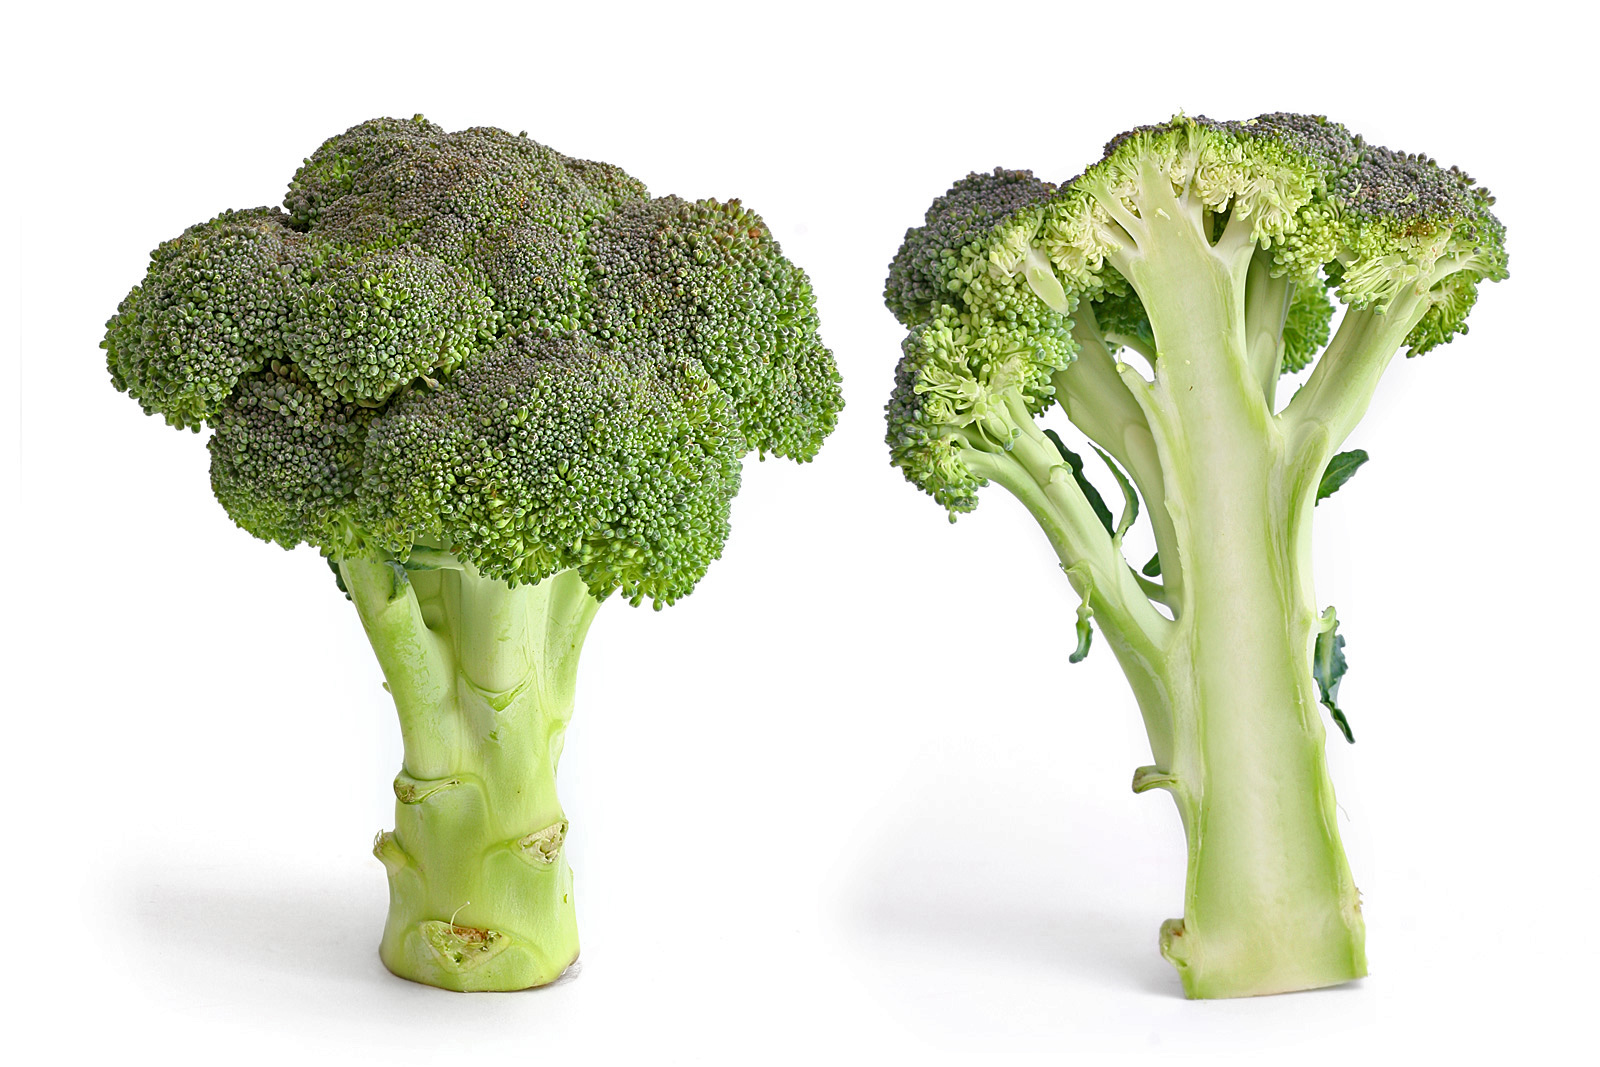 Brassica oleracea Italica Group 'Calabrese' Showing presentation of a Group name